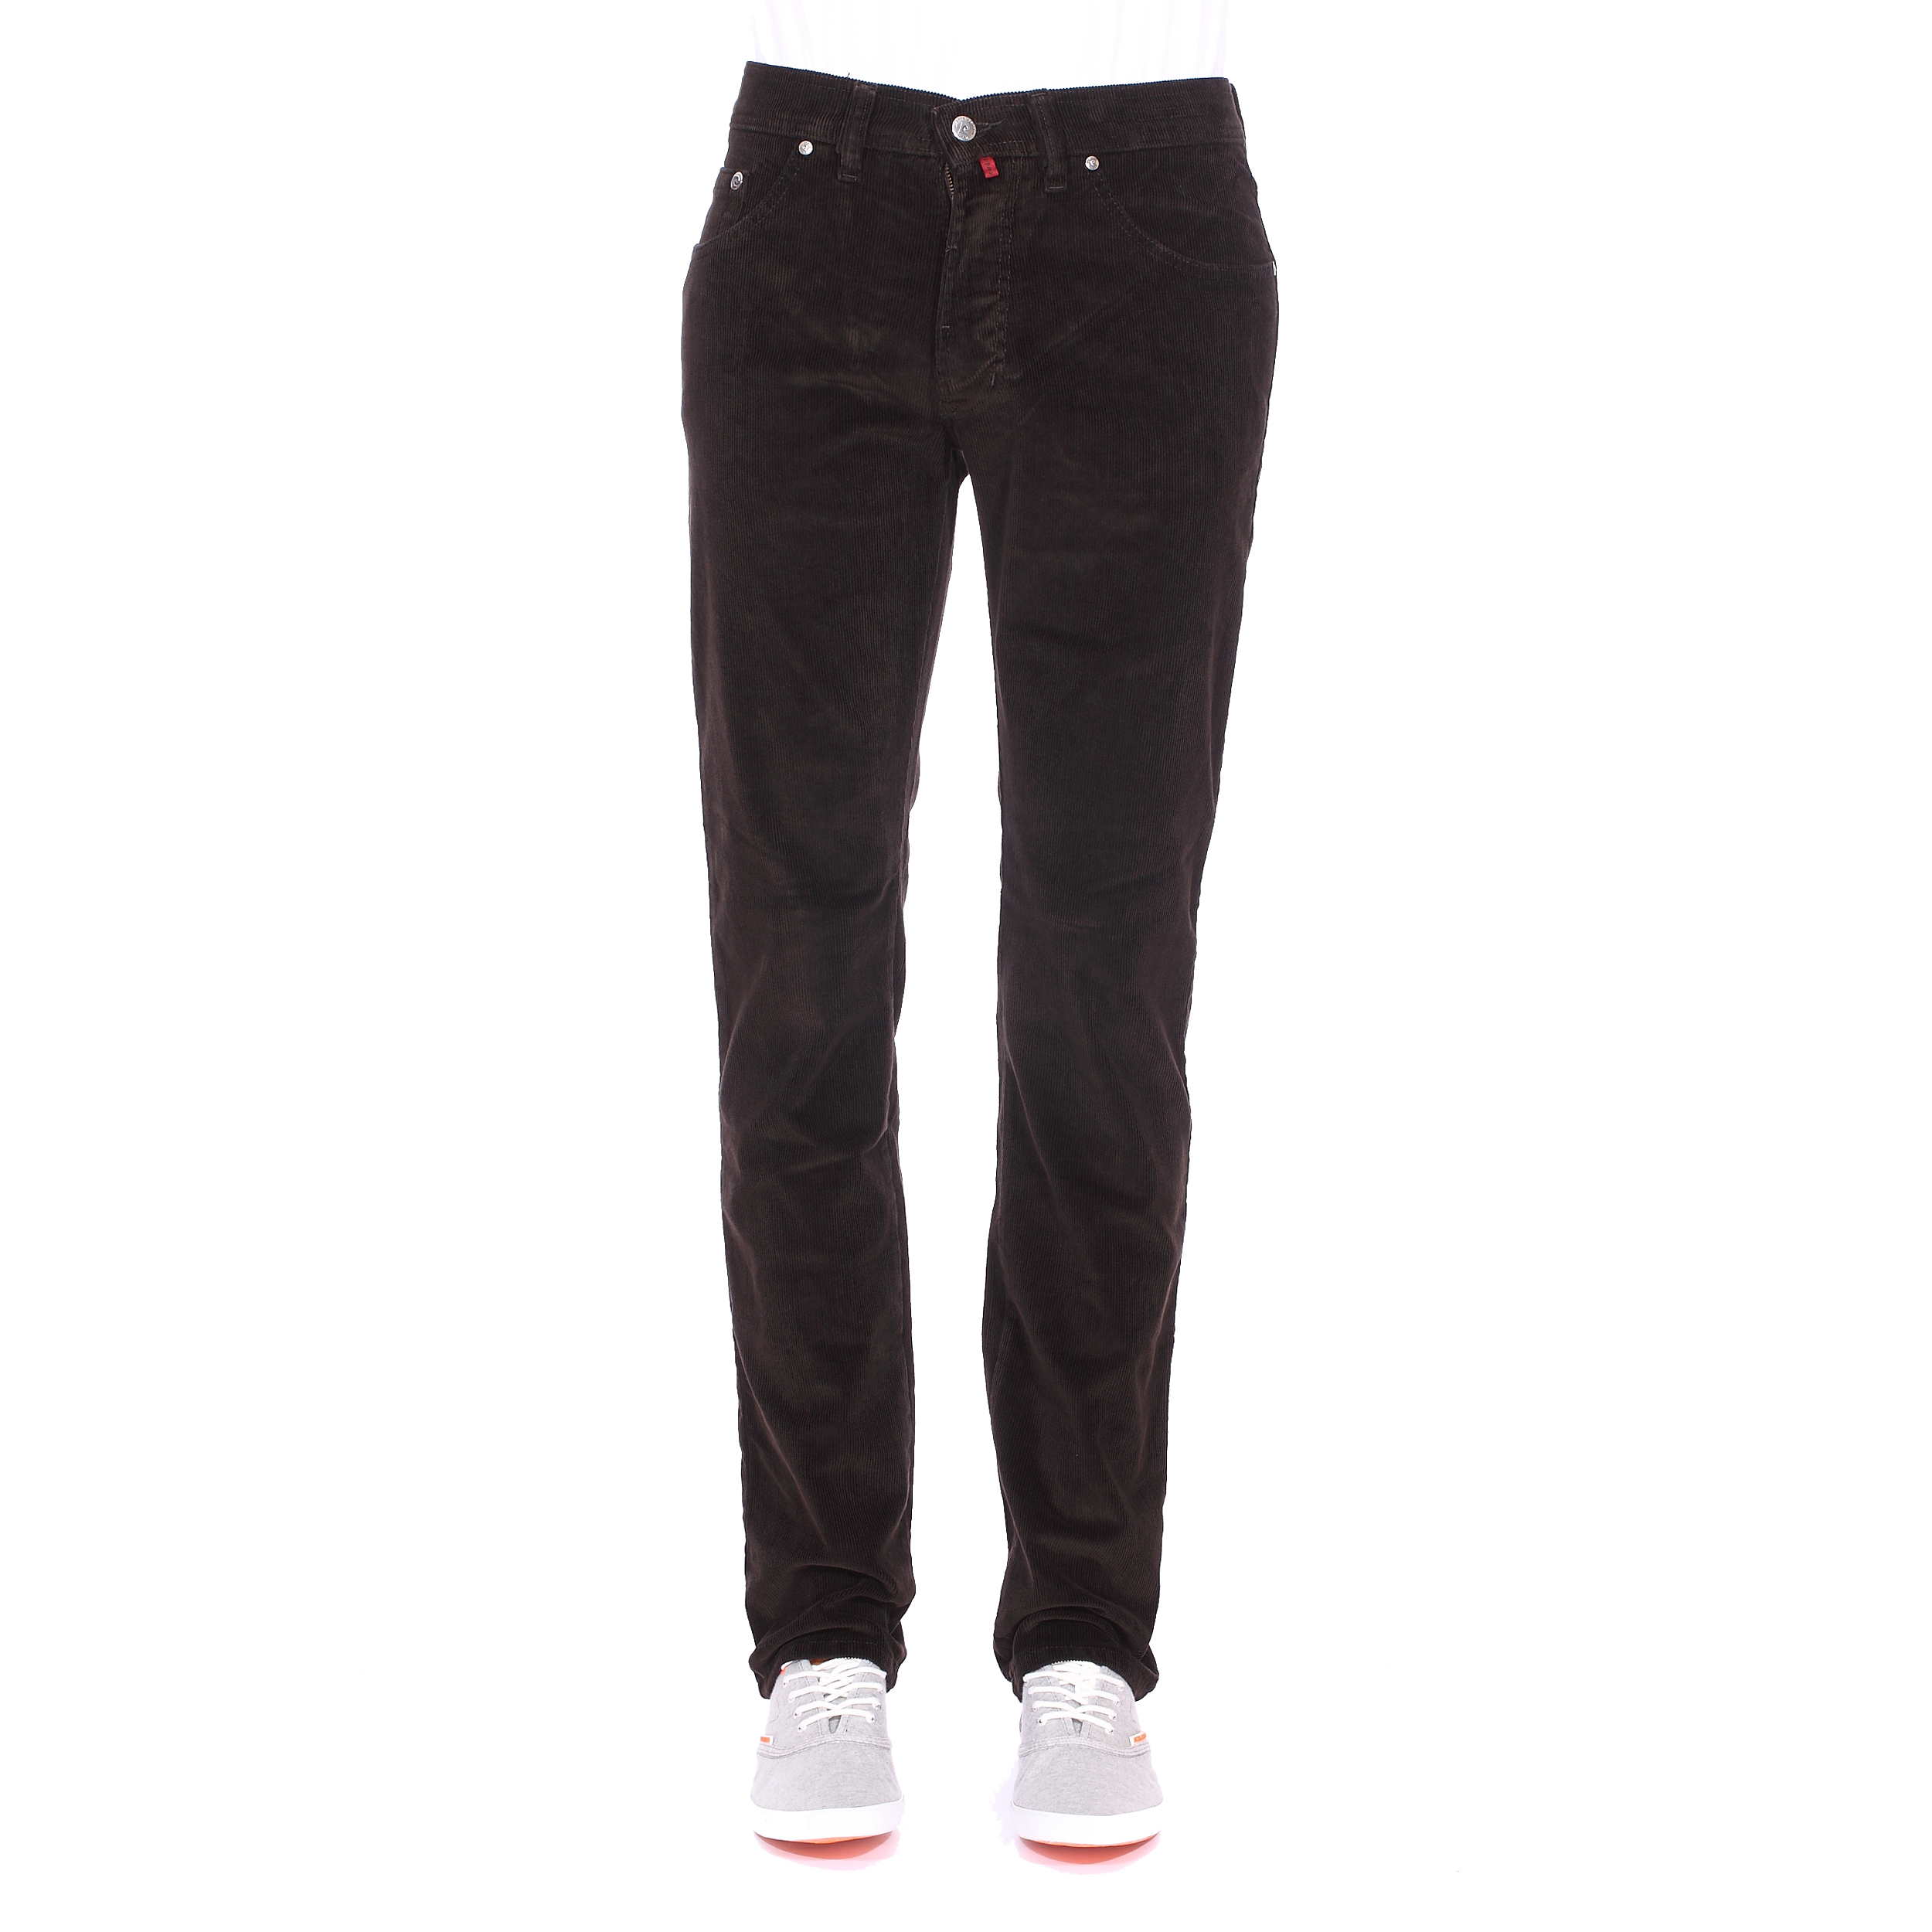 Pantalon droit  en velours marron